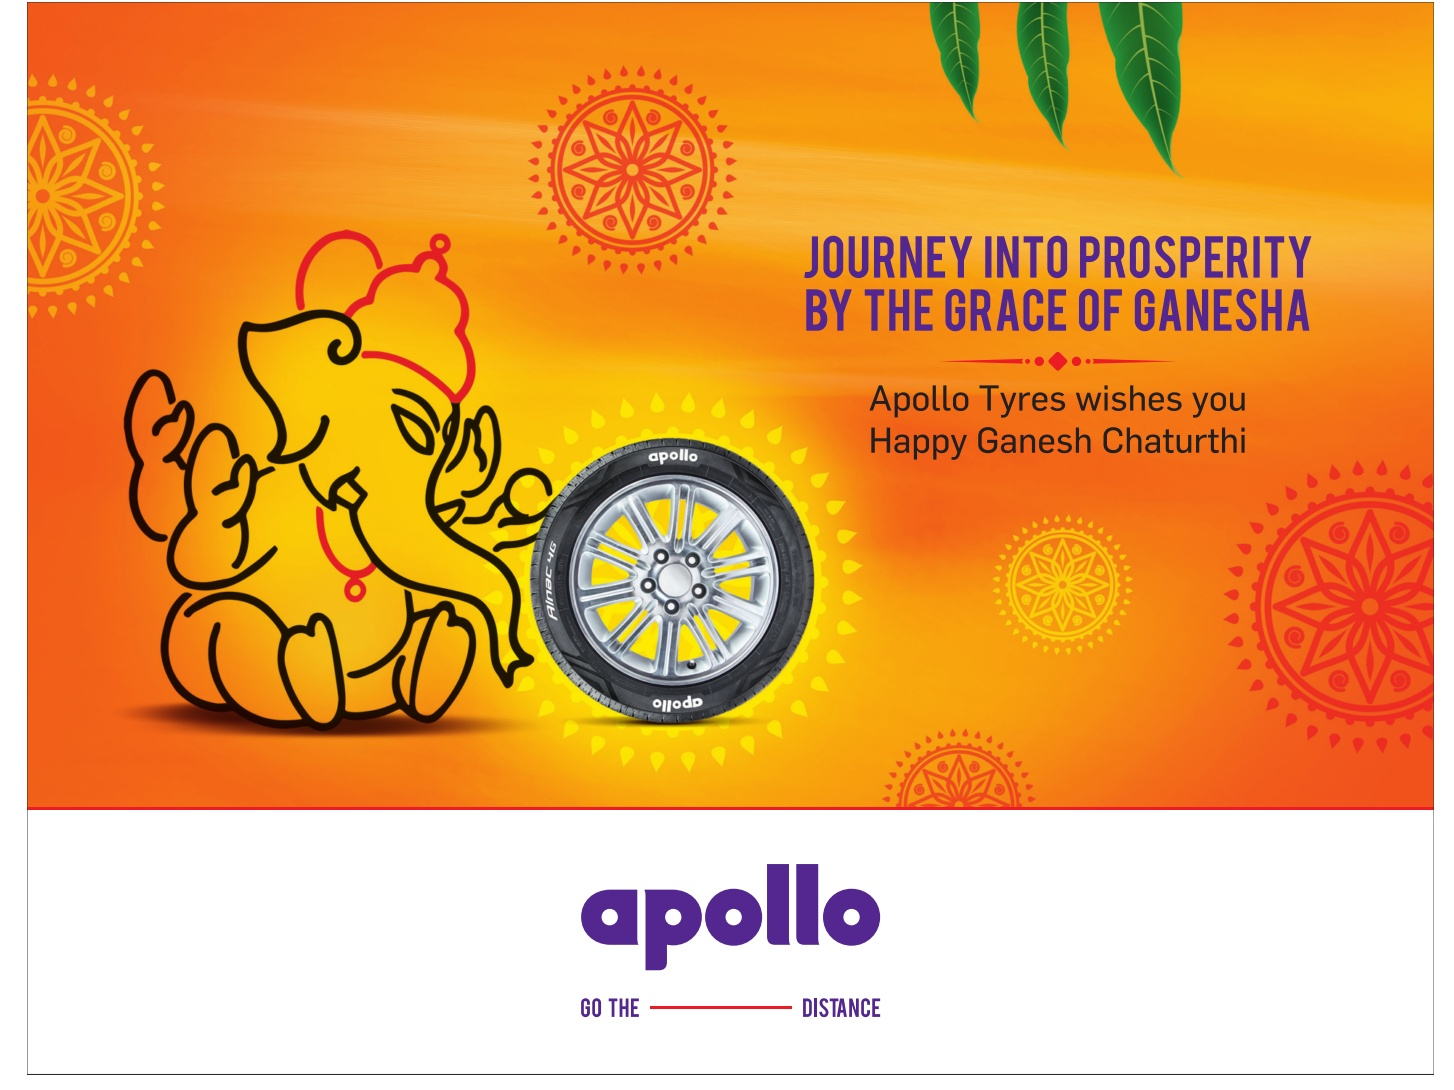 Apollo Tyres Jourey Into Prospertity By The Grace Of Ganesha Ad Advert Gallery